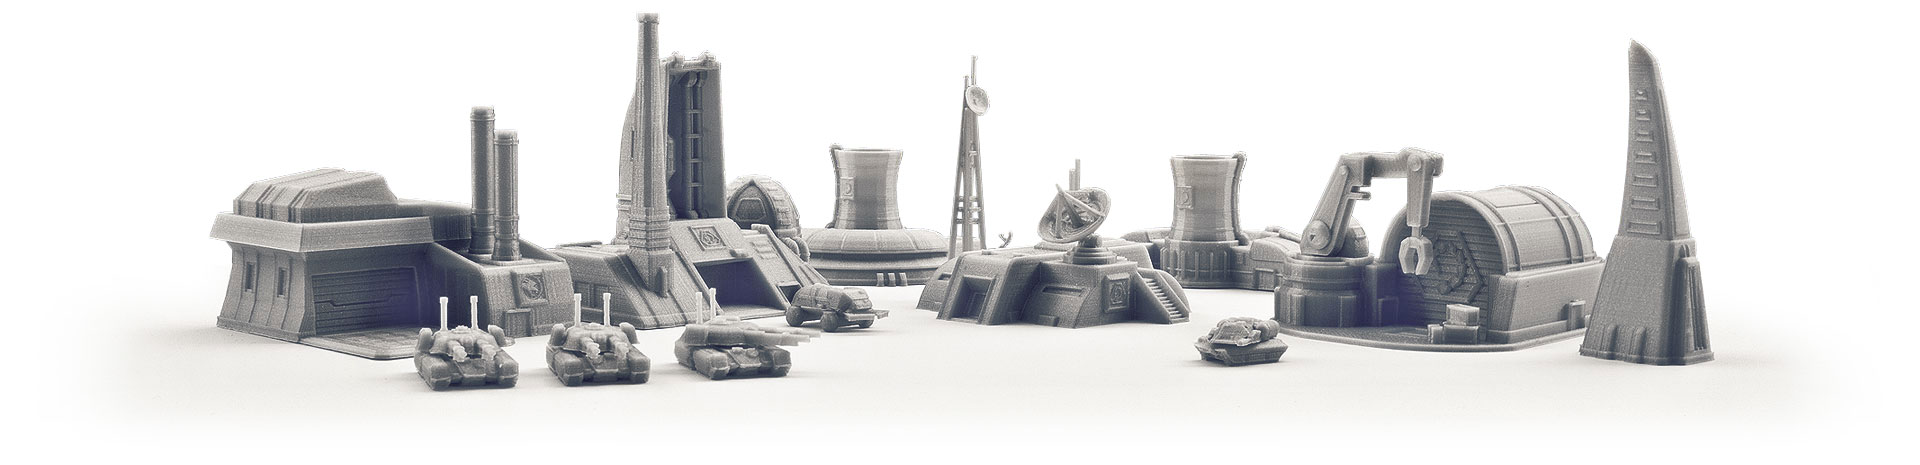 printed-armies-header03c